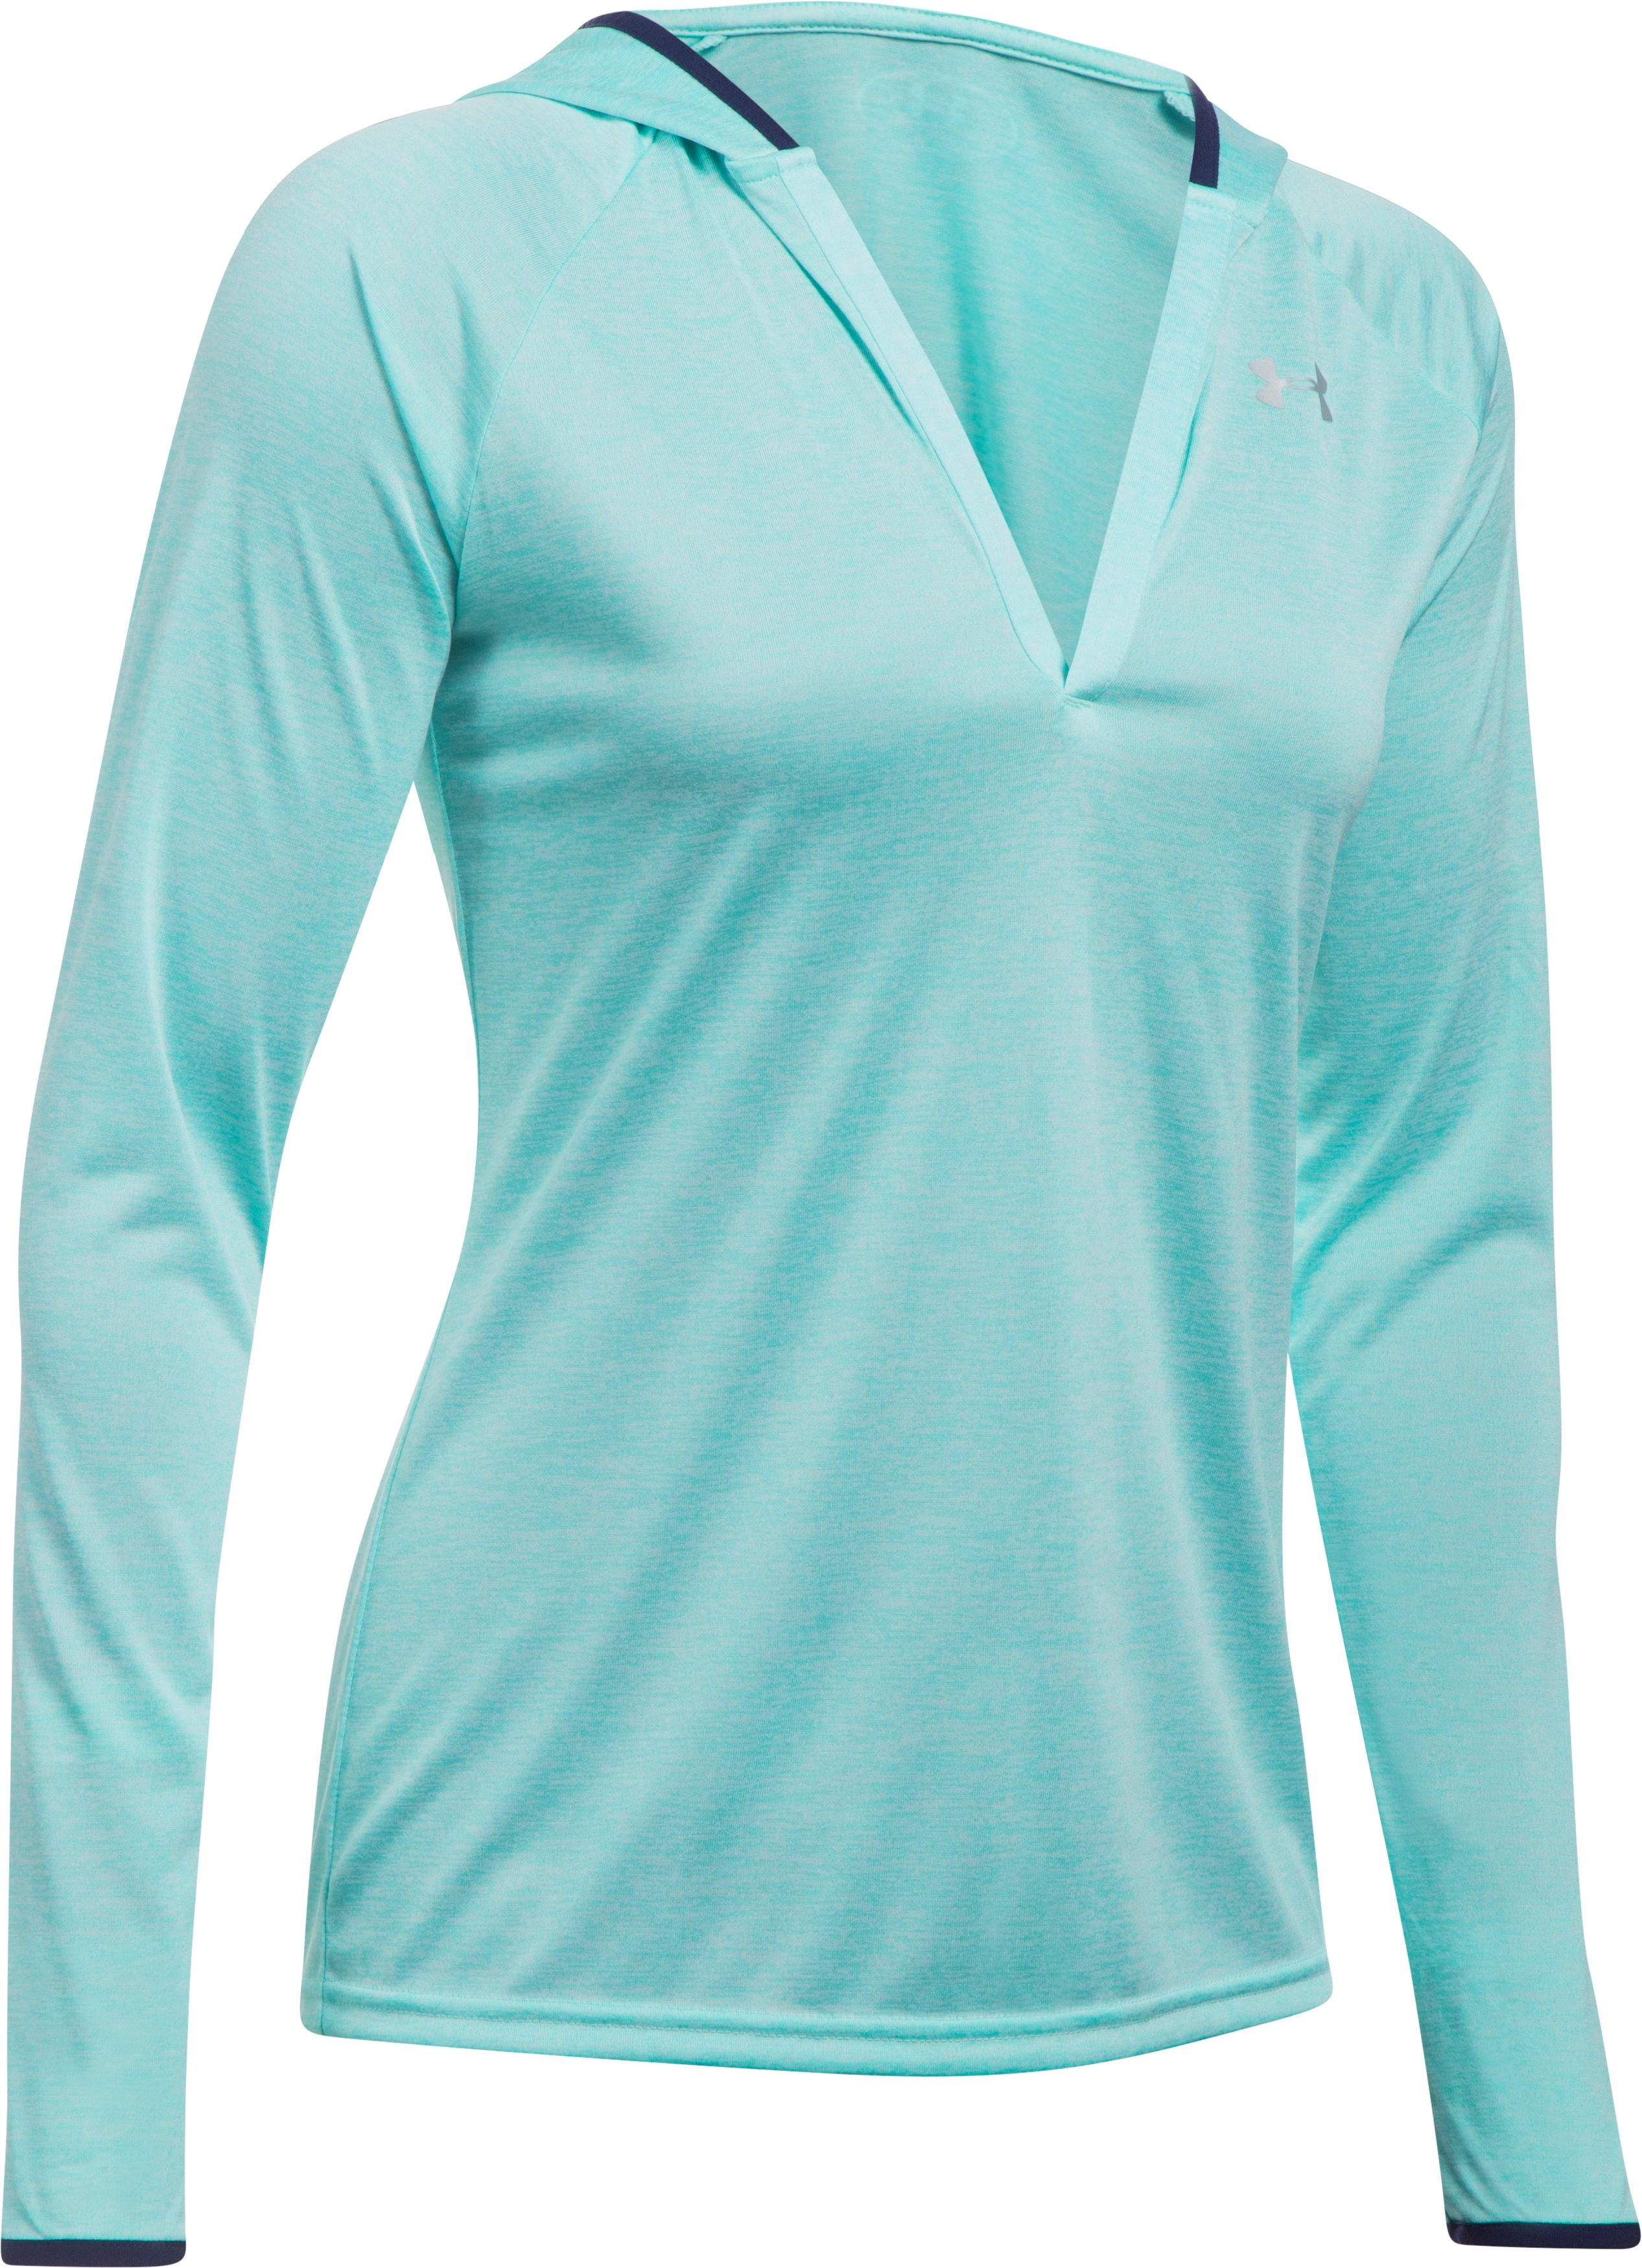 Women's UA Twisted Tech™ Long Sleeve Hoodie, BLUE INFINITY